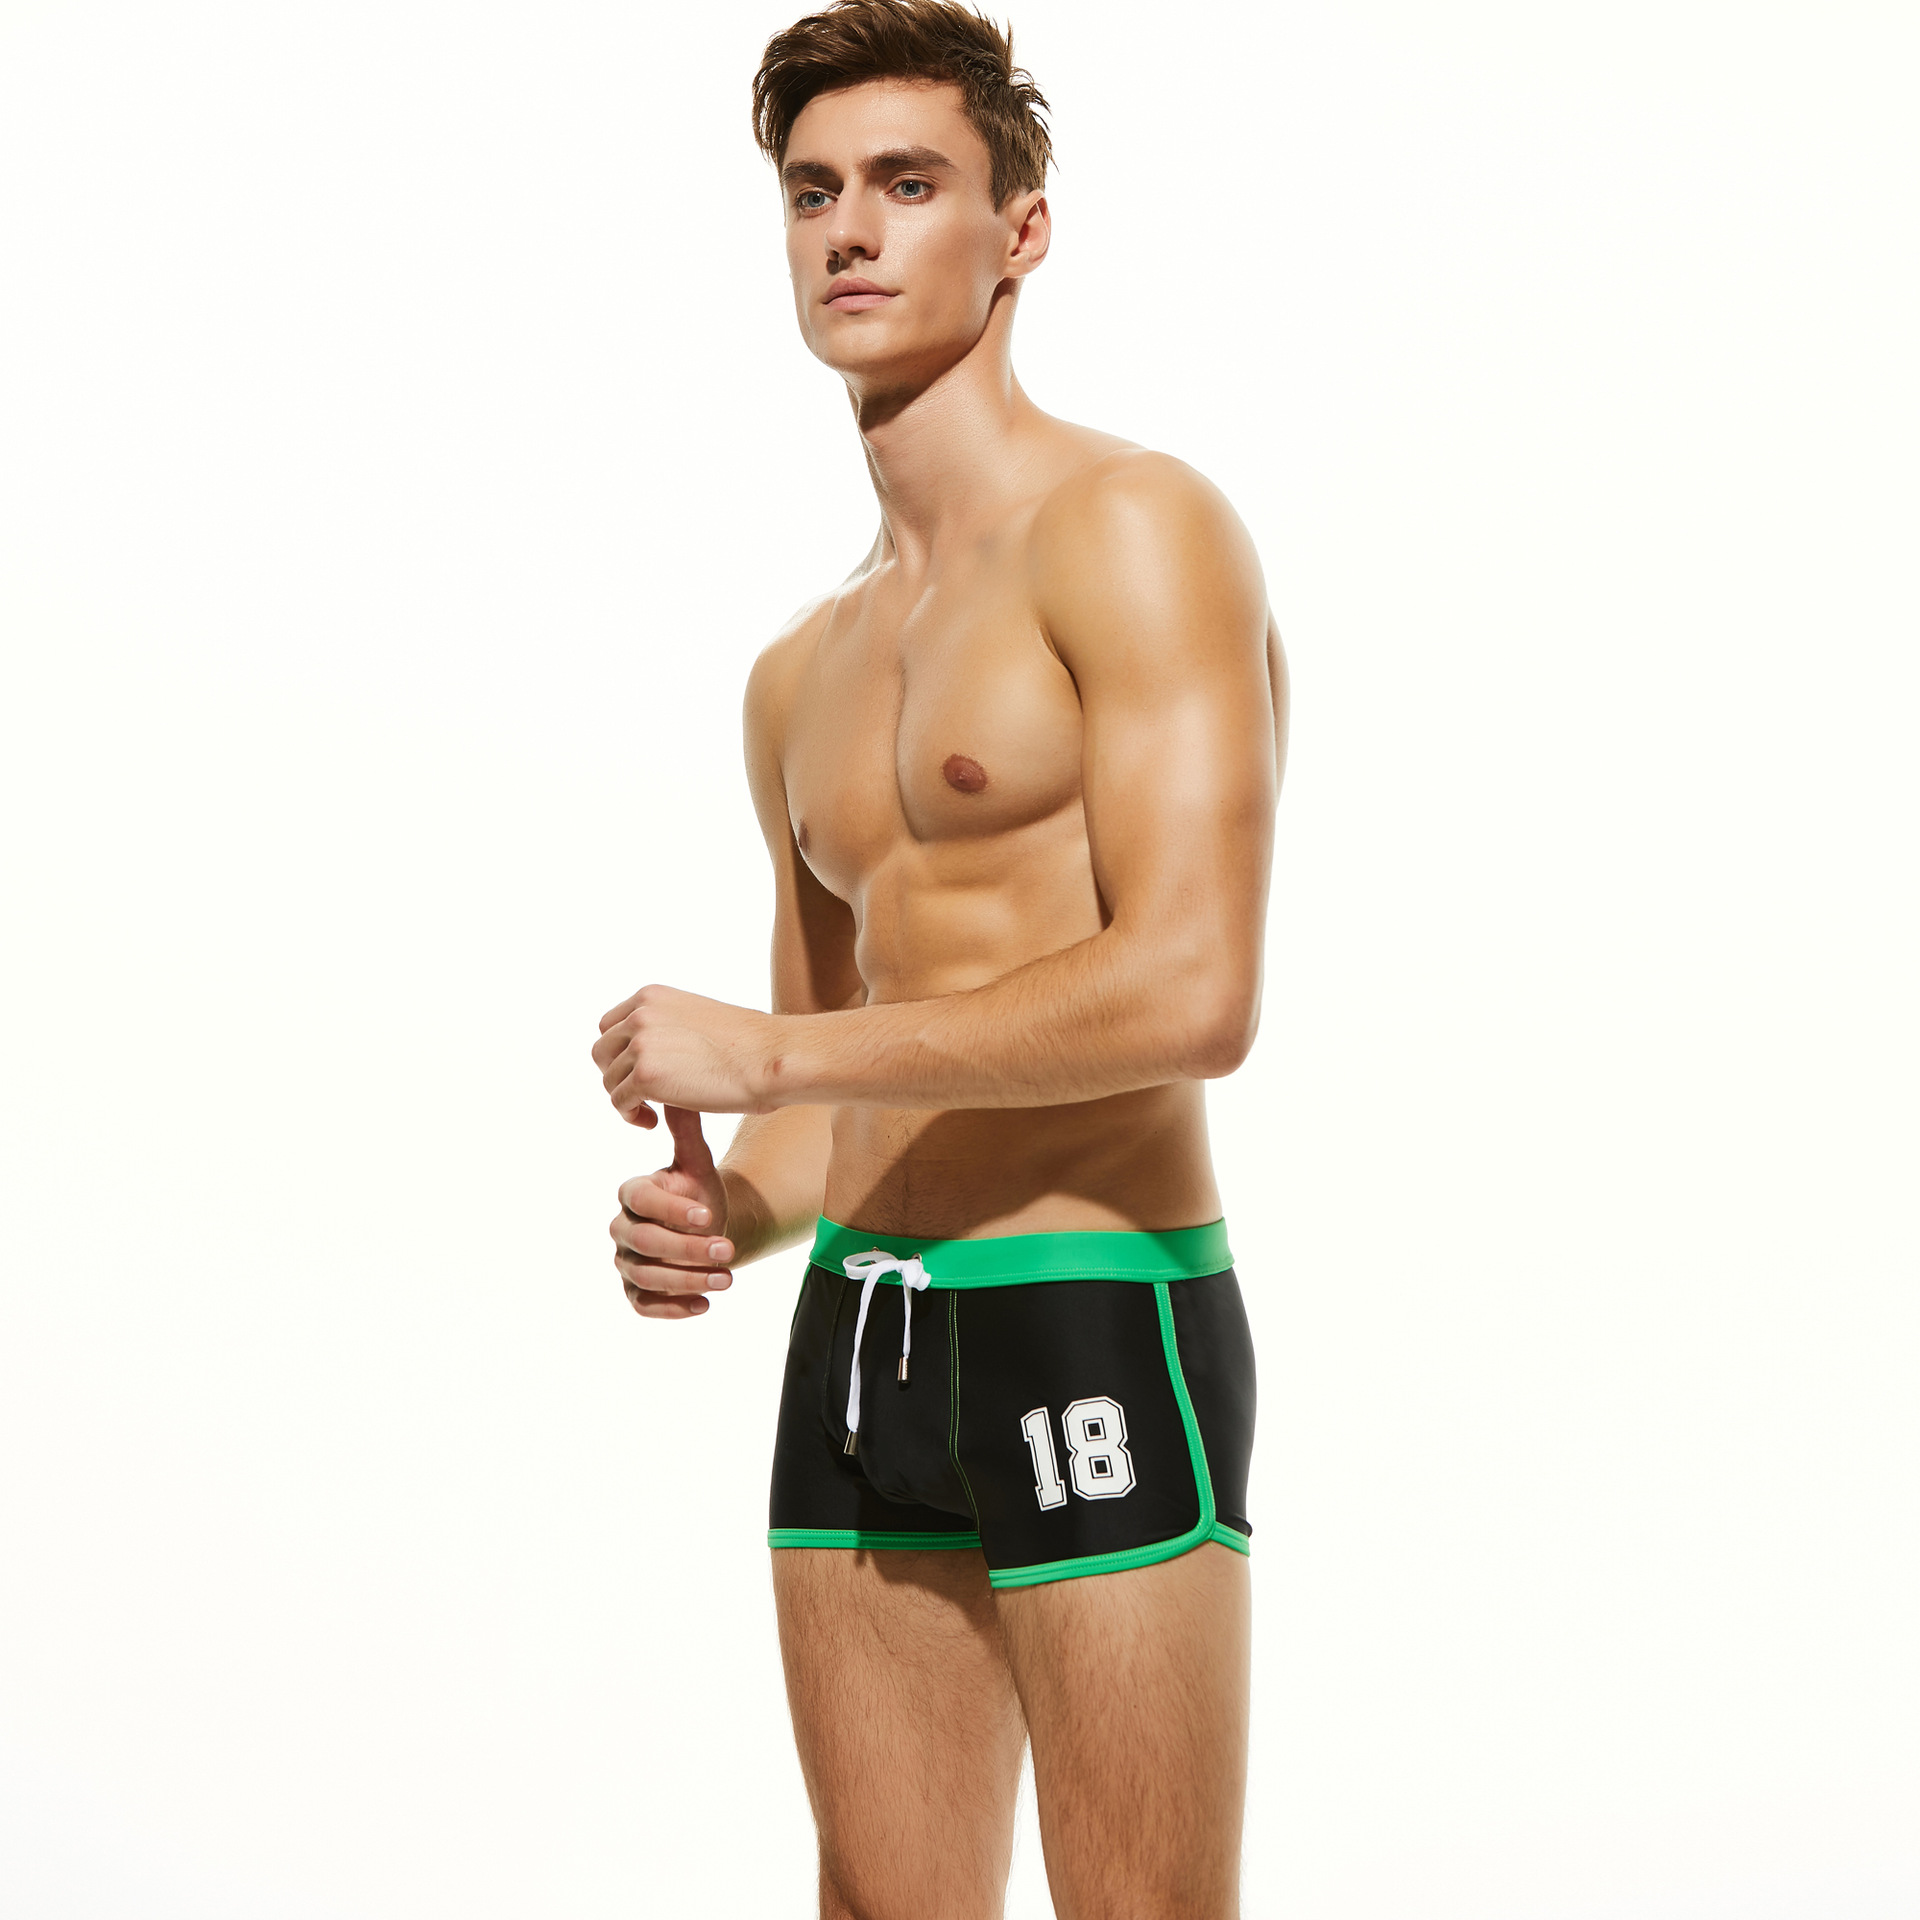 2018 Summer Day Hot Sales Men-Style Mixed Colors AussieBum Young MEN'S No. 18 Hot Springs Swimming Trunks Fashion